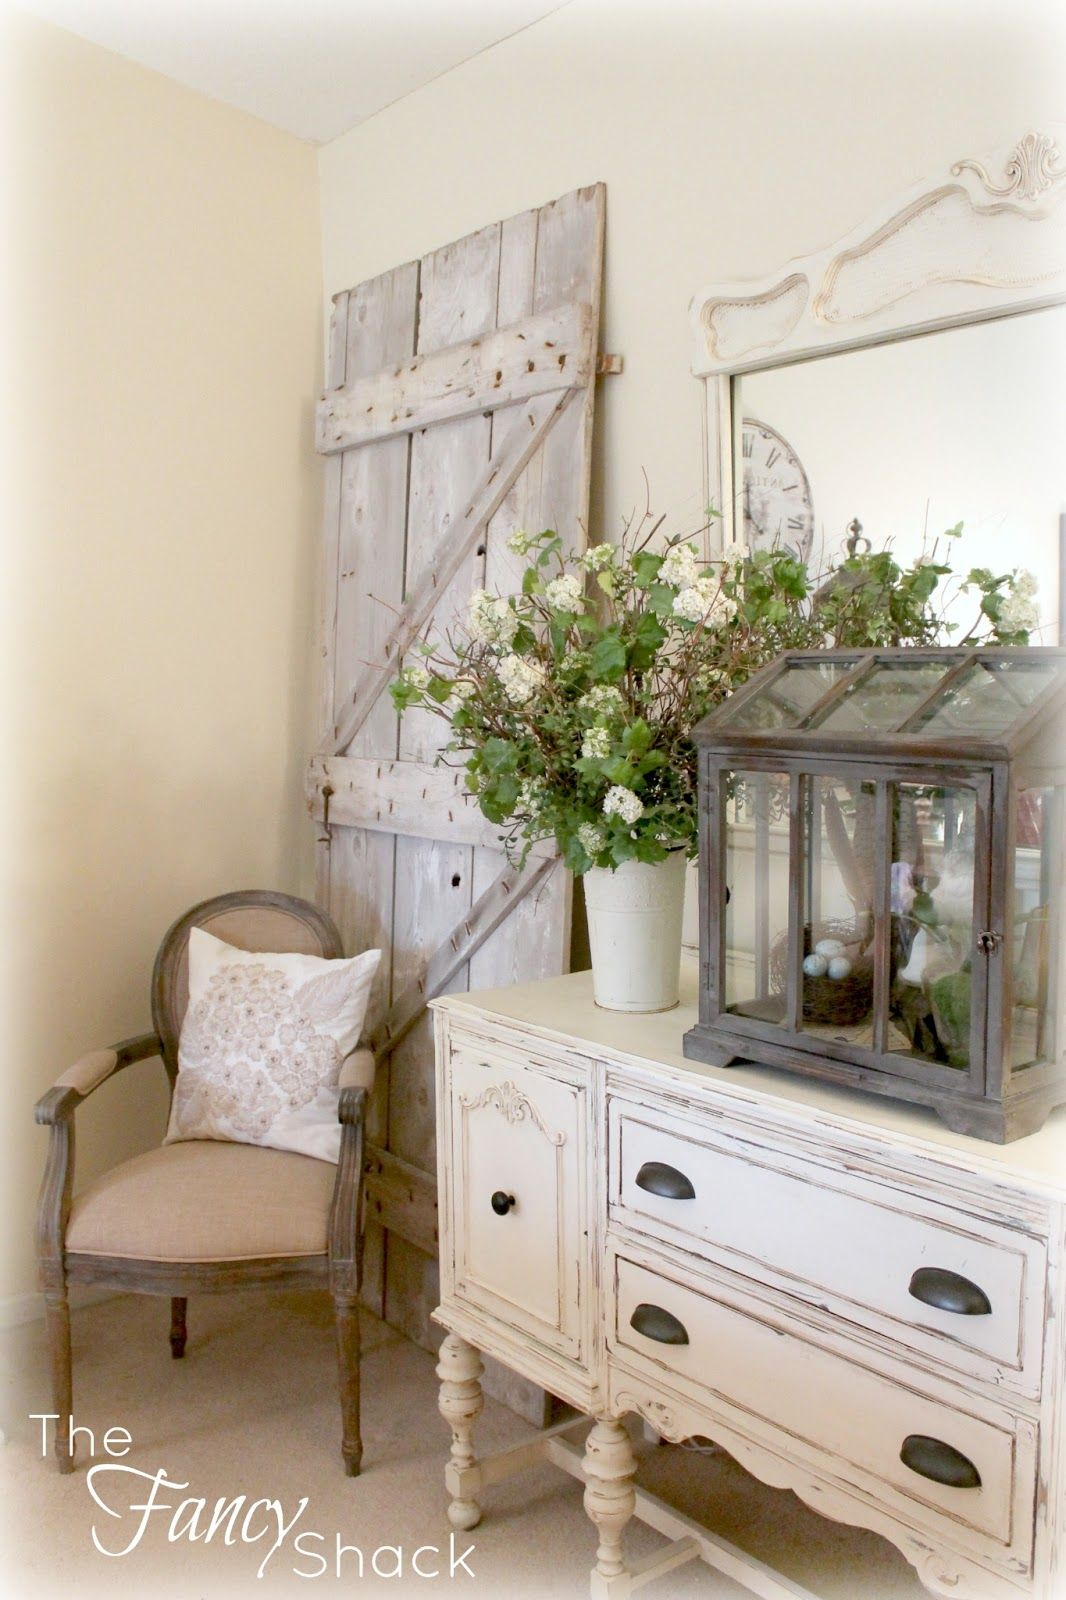 Decor Oriental Chic 52 Ways Incorporate Shabby Chic Style Into Every Room In Your Home